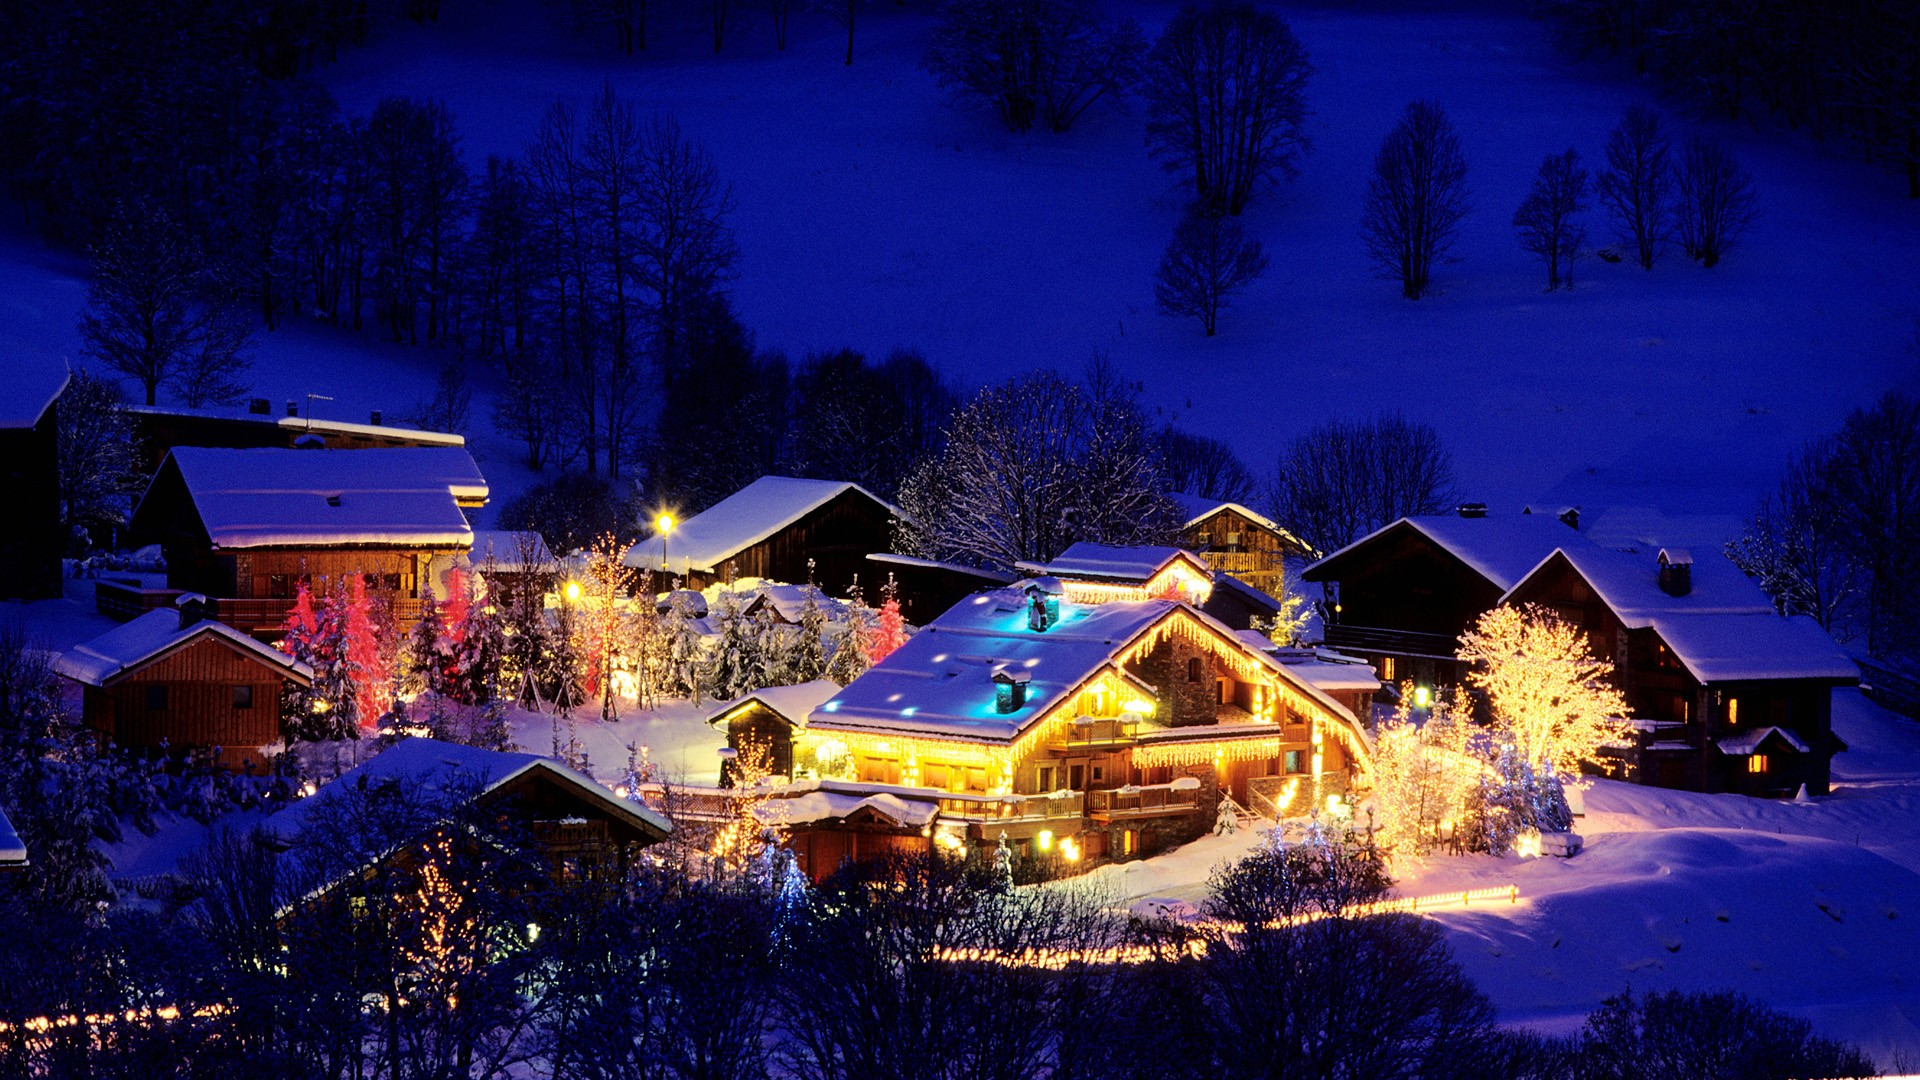 Hd Wallpapers For Pc 1080p Free Download Pack Christmas Wallpaper Wallpapers High Quality Download Free